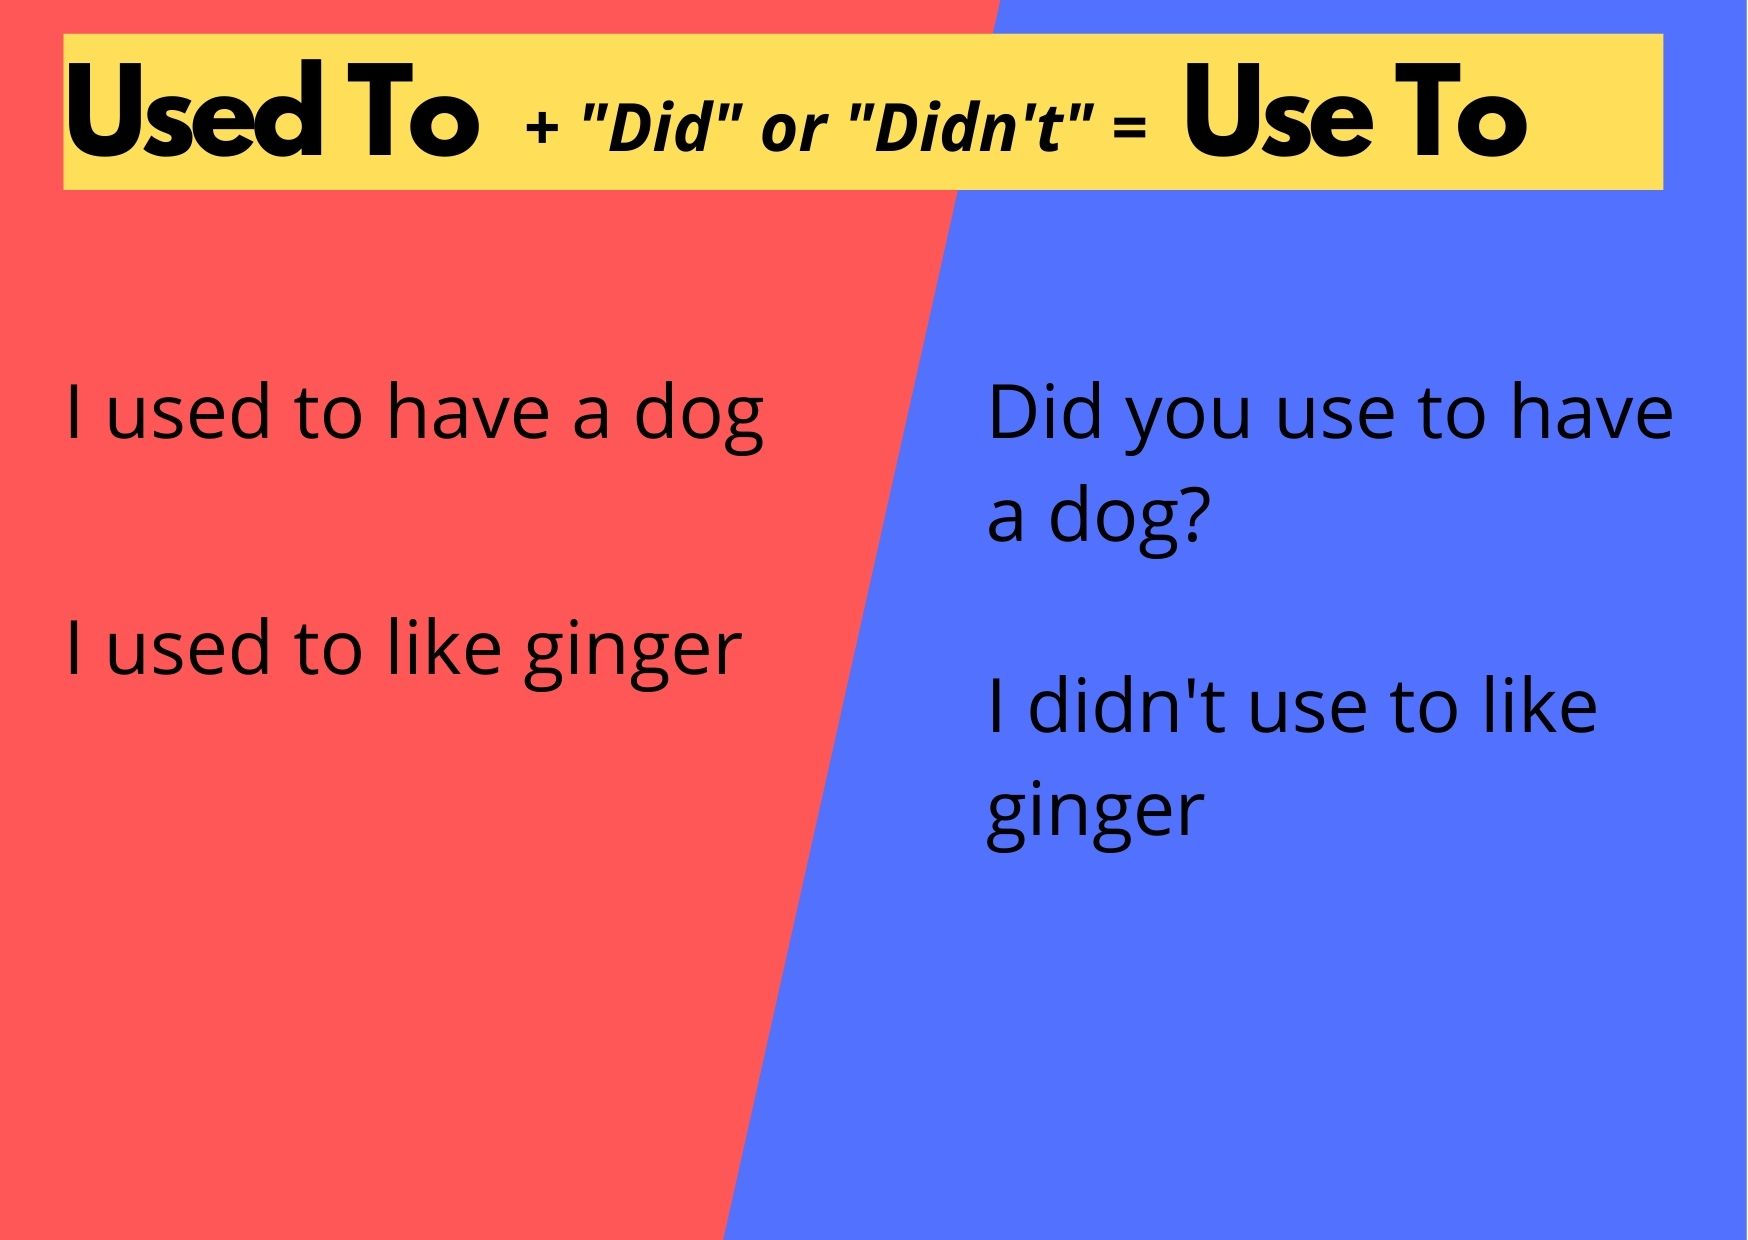 Graphic addressing use to or used to. Used to becomes use to when paired with did or didn't